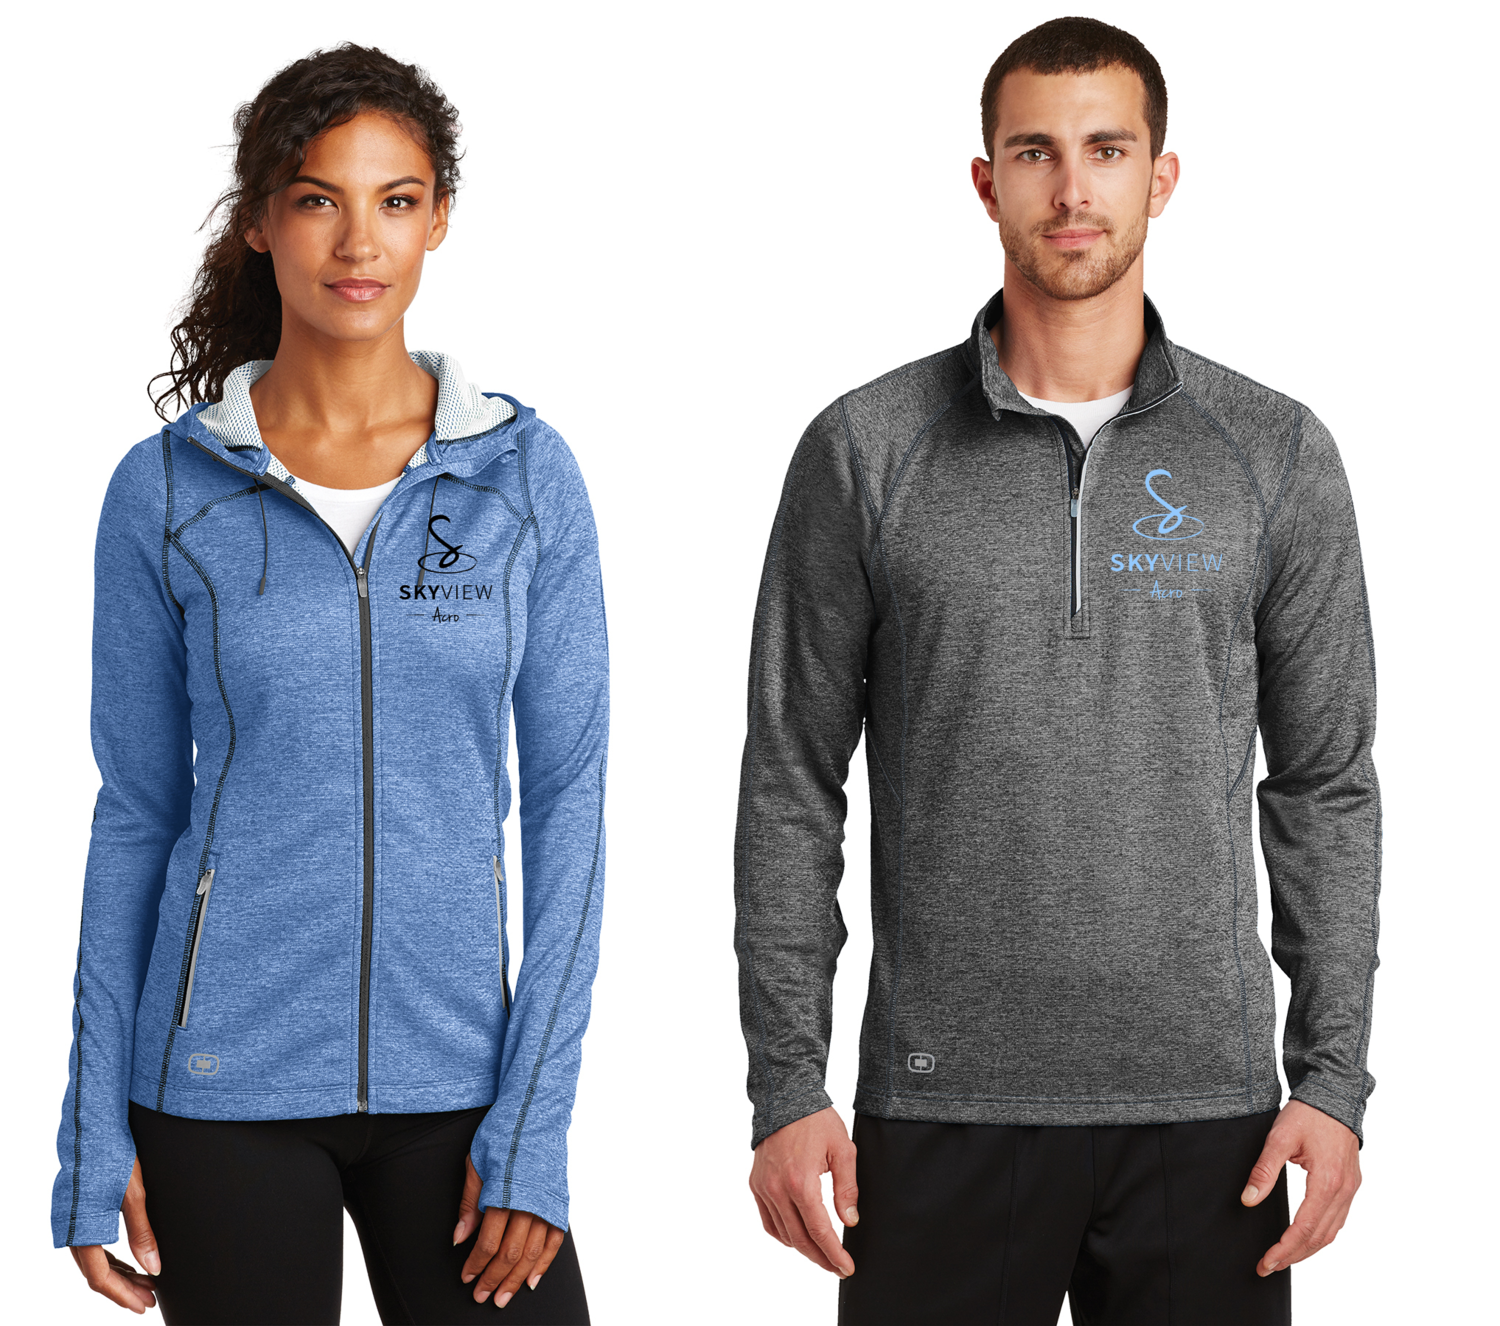 OGIO® ENDURANCE Pursuit 1/4-Zip - Skyview Acro Gym